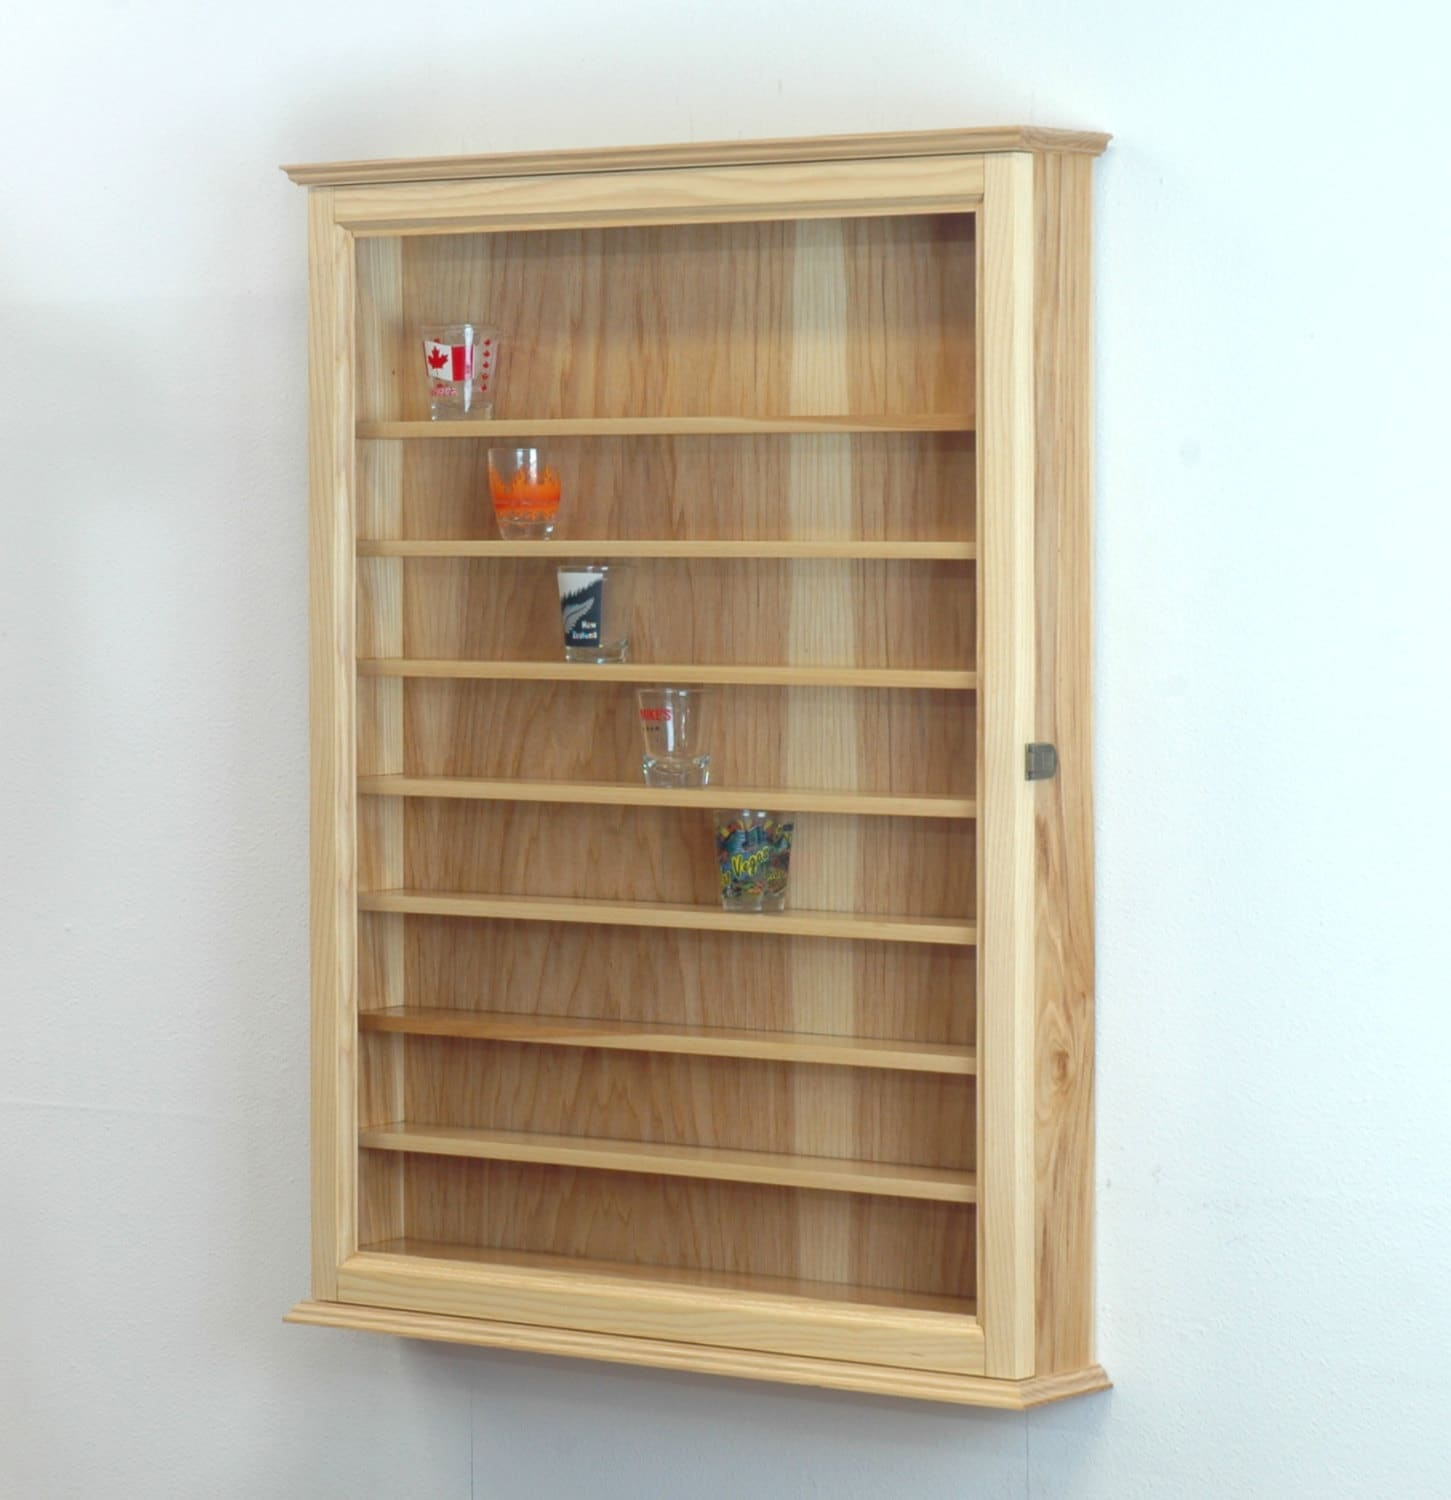 Hickory shot glass display case wall cabinet by fwdisplay on etsy